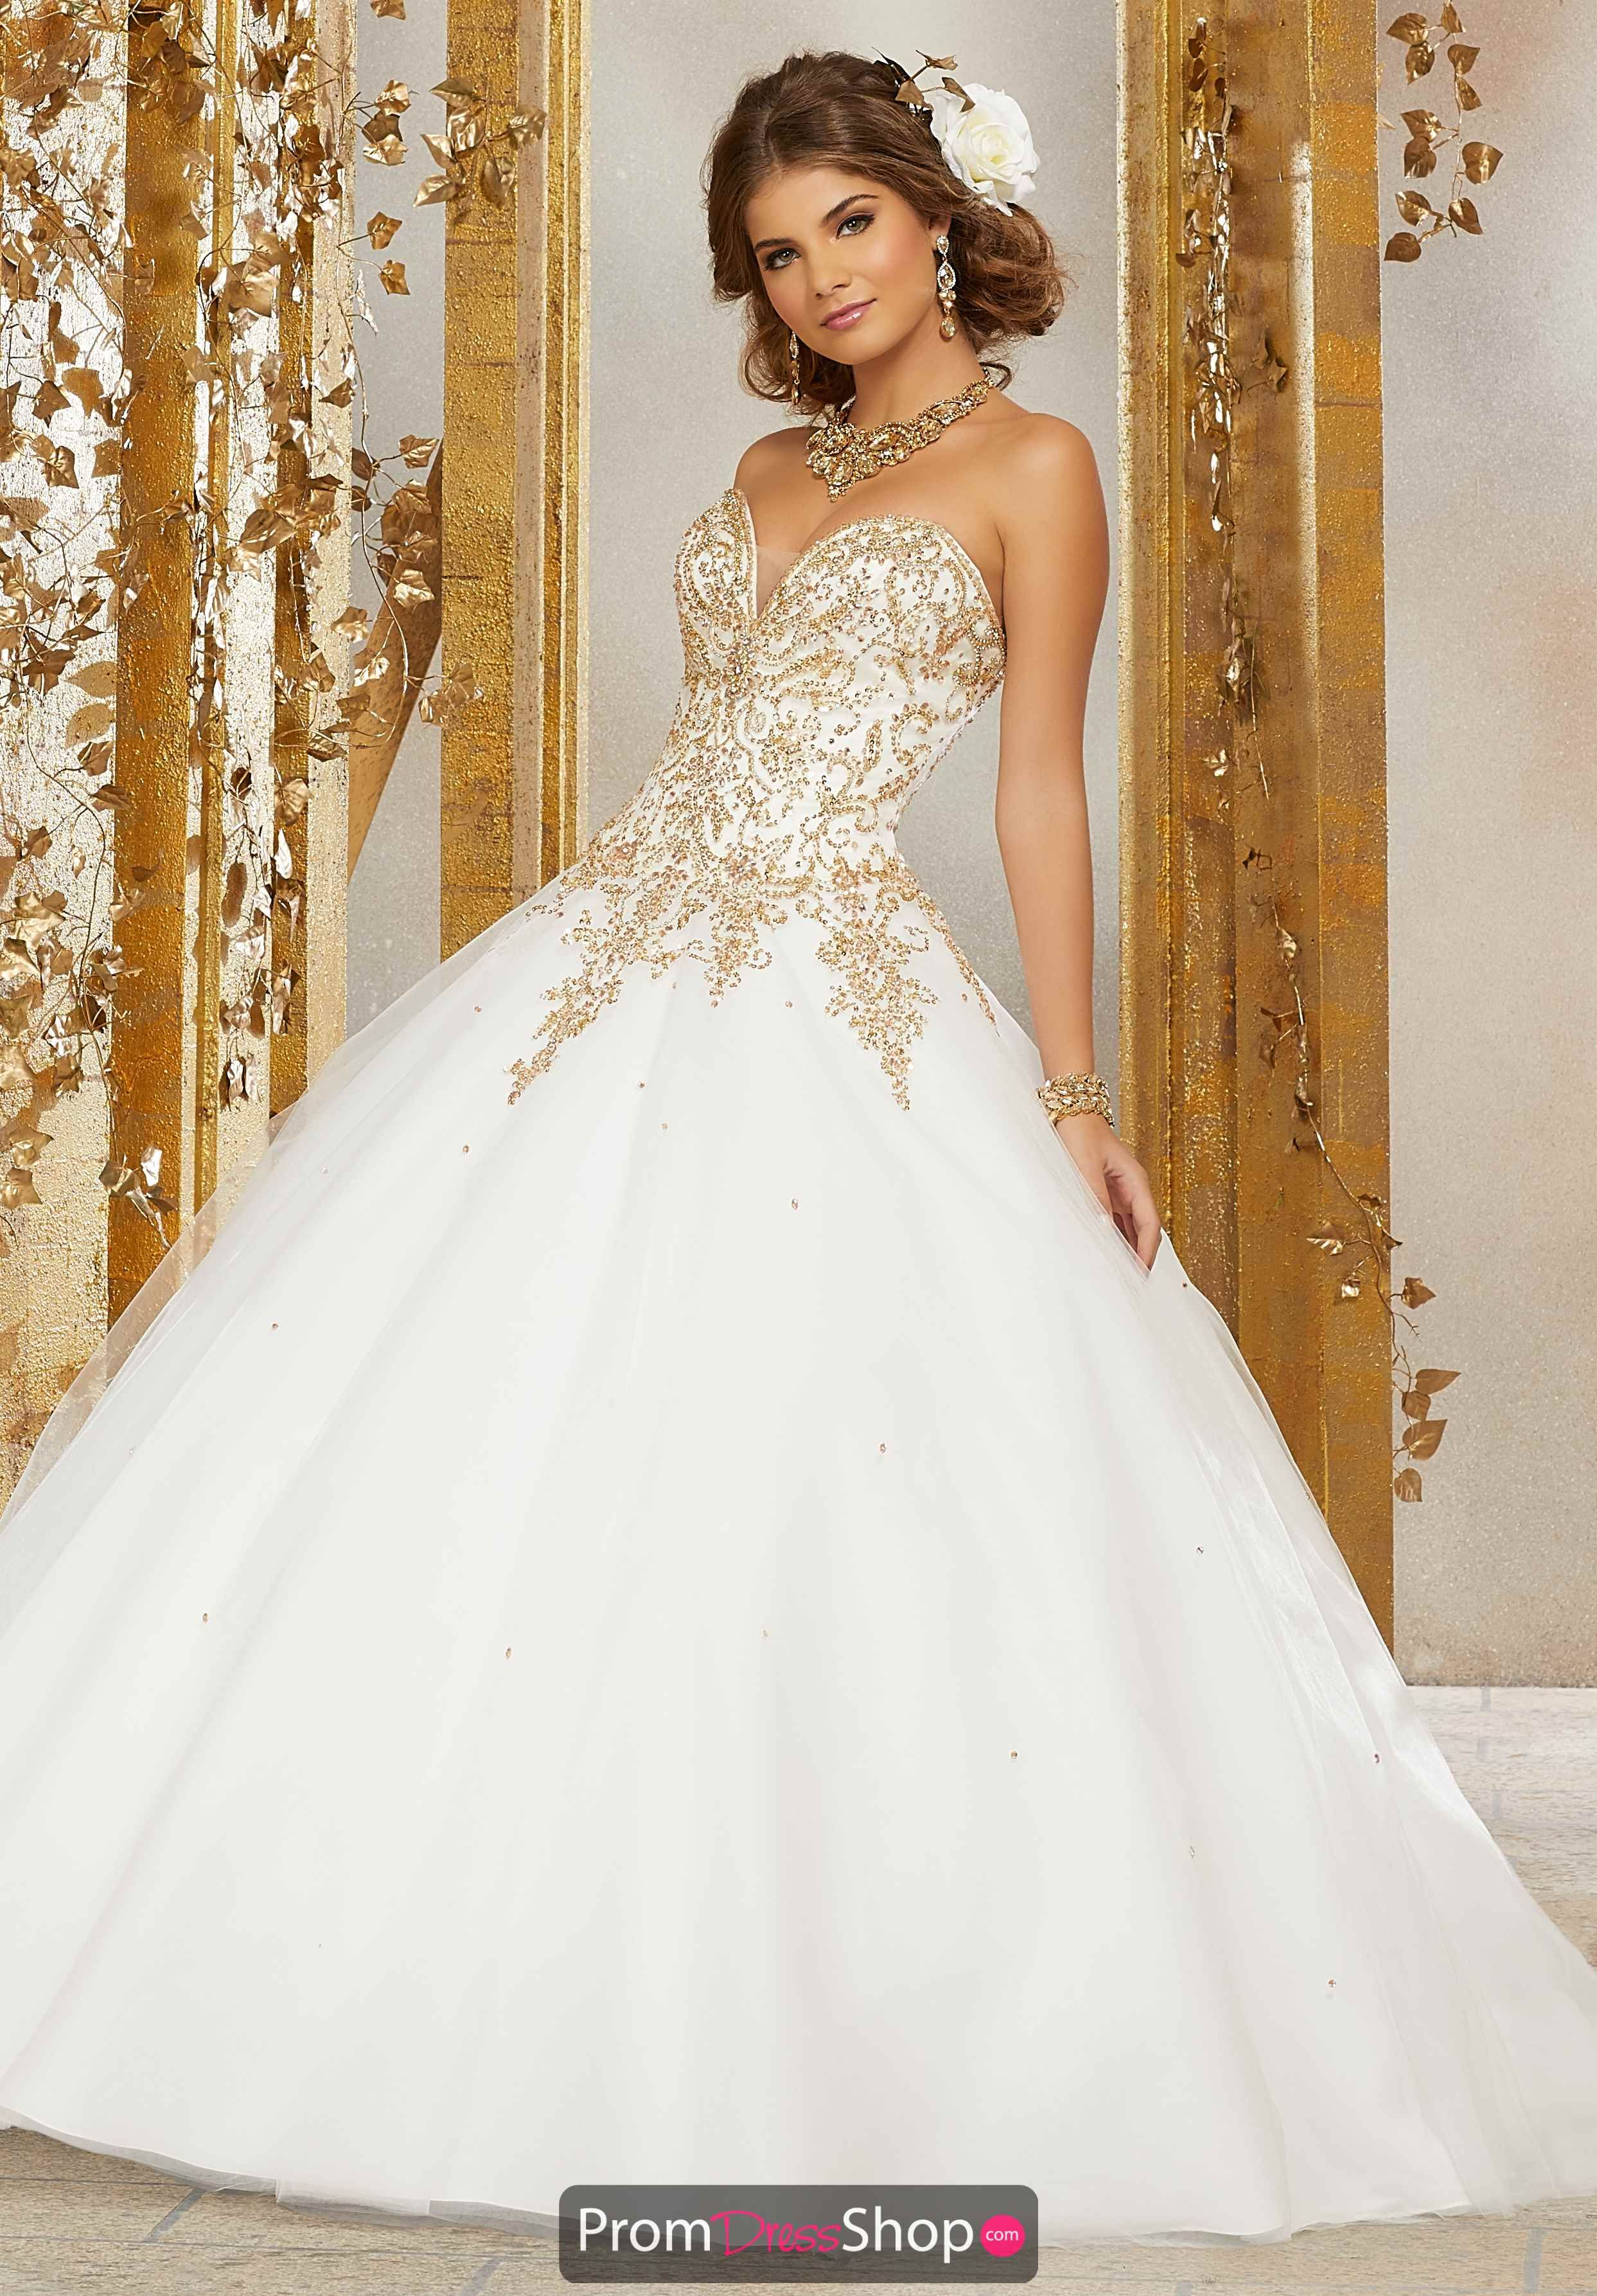 Ivory Gold White Quinceanera Dresses Quince Dresses Mori Lee Quinceanera Dresses [ 3573 x 2486 Pixel ]